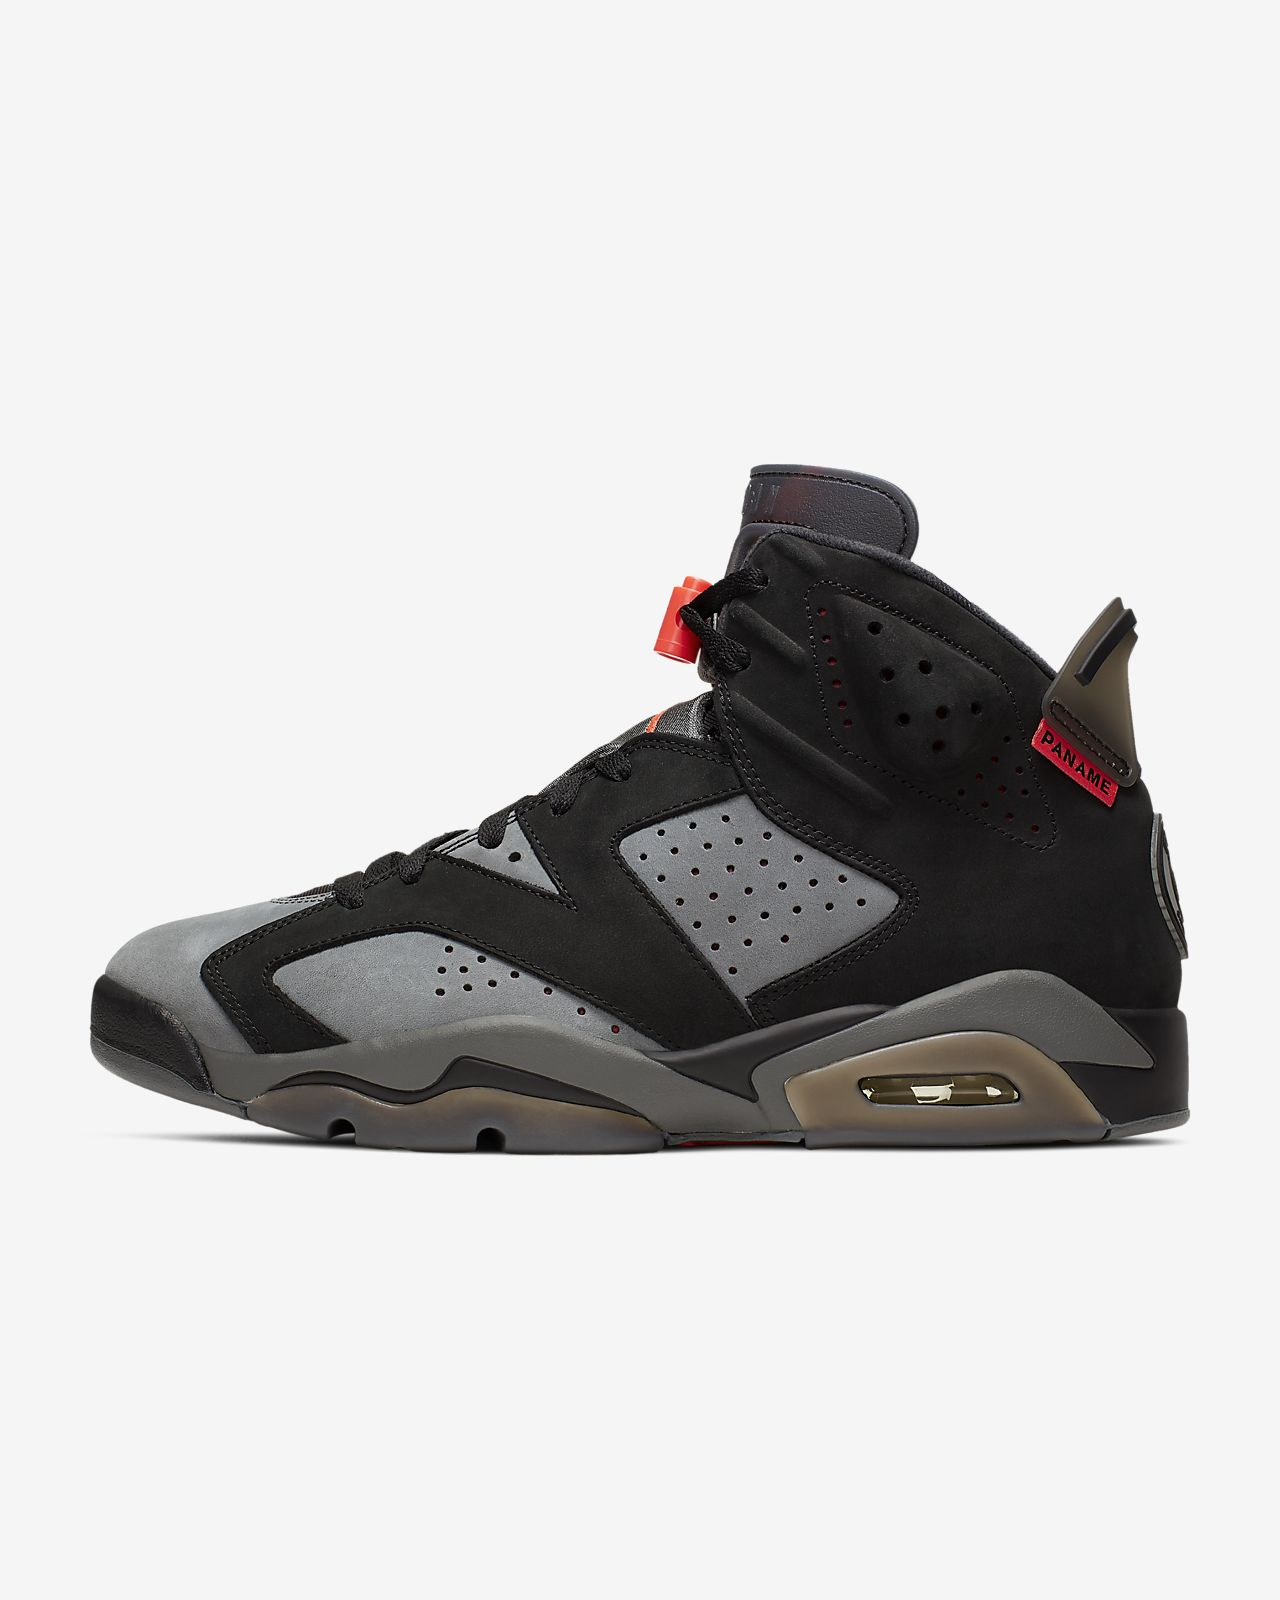 plus récent 17833 0e198 Air Jordan 6 Retro Paris Saint-Germain Men's Shoe. Nike.com